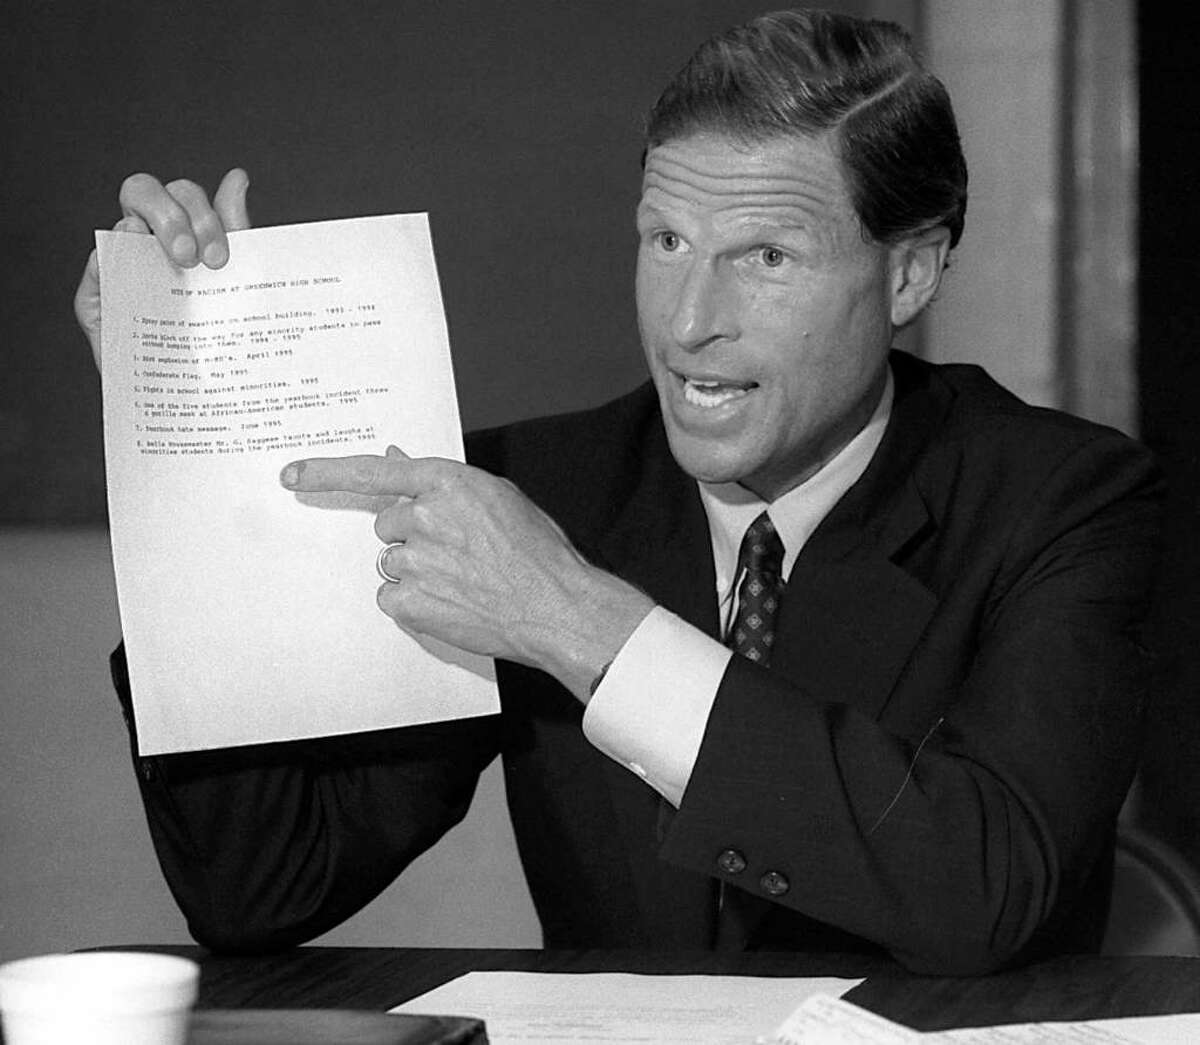 Connecticut Attorney General Richard Blumenthal points to a list of recent racial incidents at Greenwich High School during a meeting on July 24th, 1995. Blumenthal was handed the list by someone at the meeting and was pointing at it in agreement that there seemed to be a problem at the school.